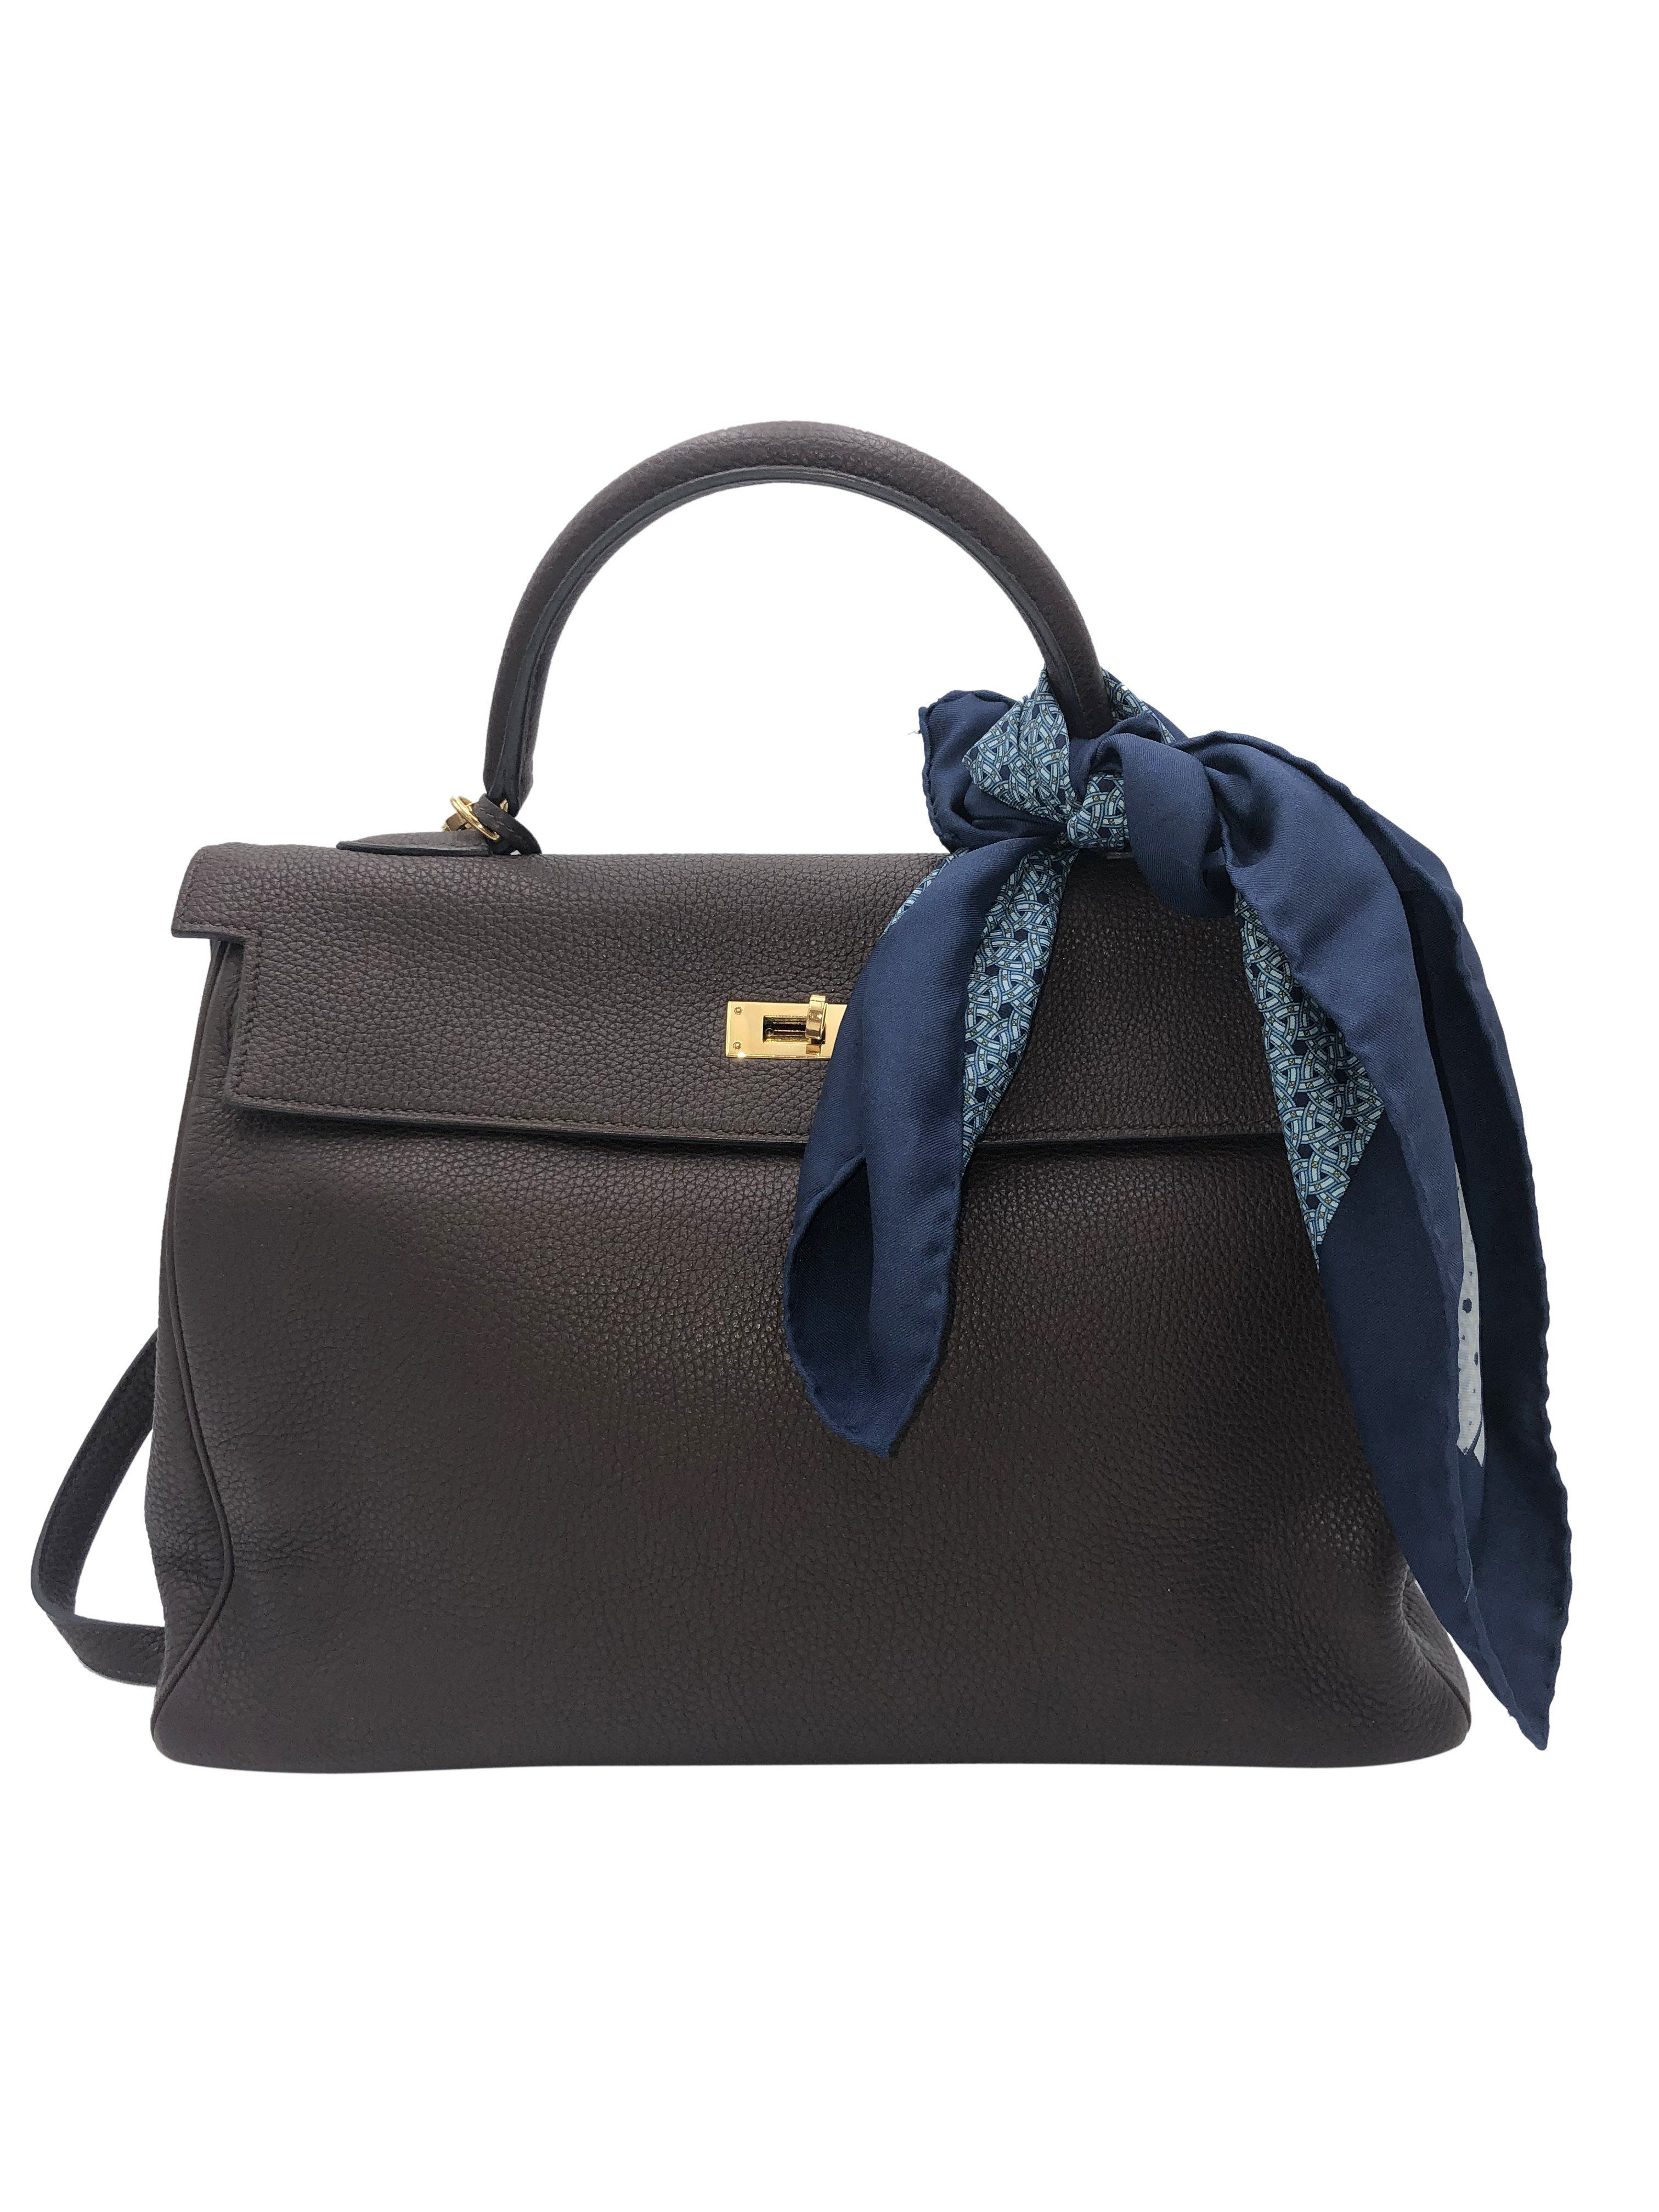 079a8c7bdad224 Stop looking at this Mens Hermes Blue ... oh gone on then see more